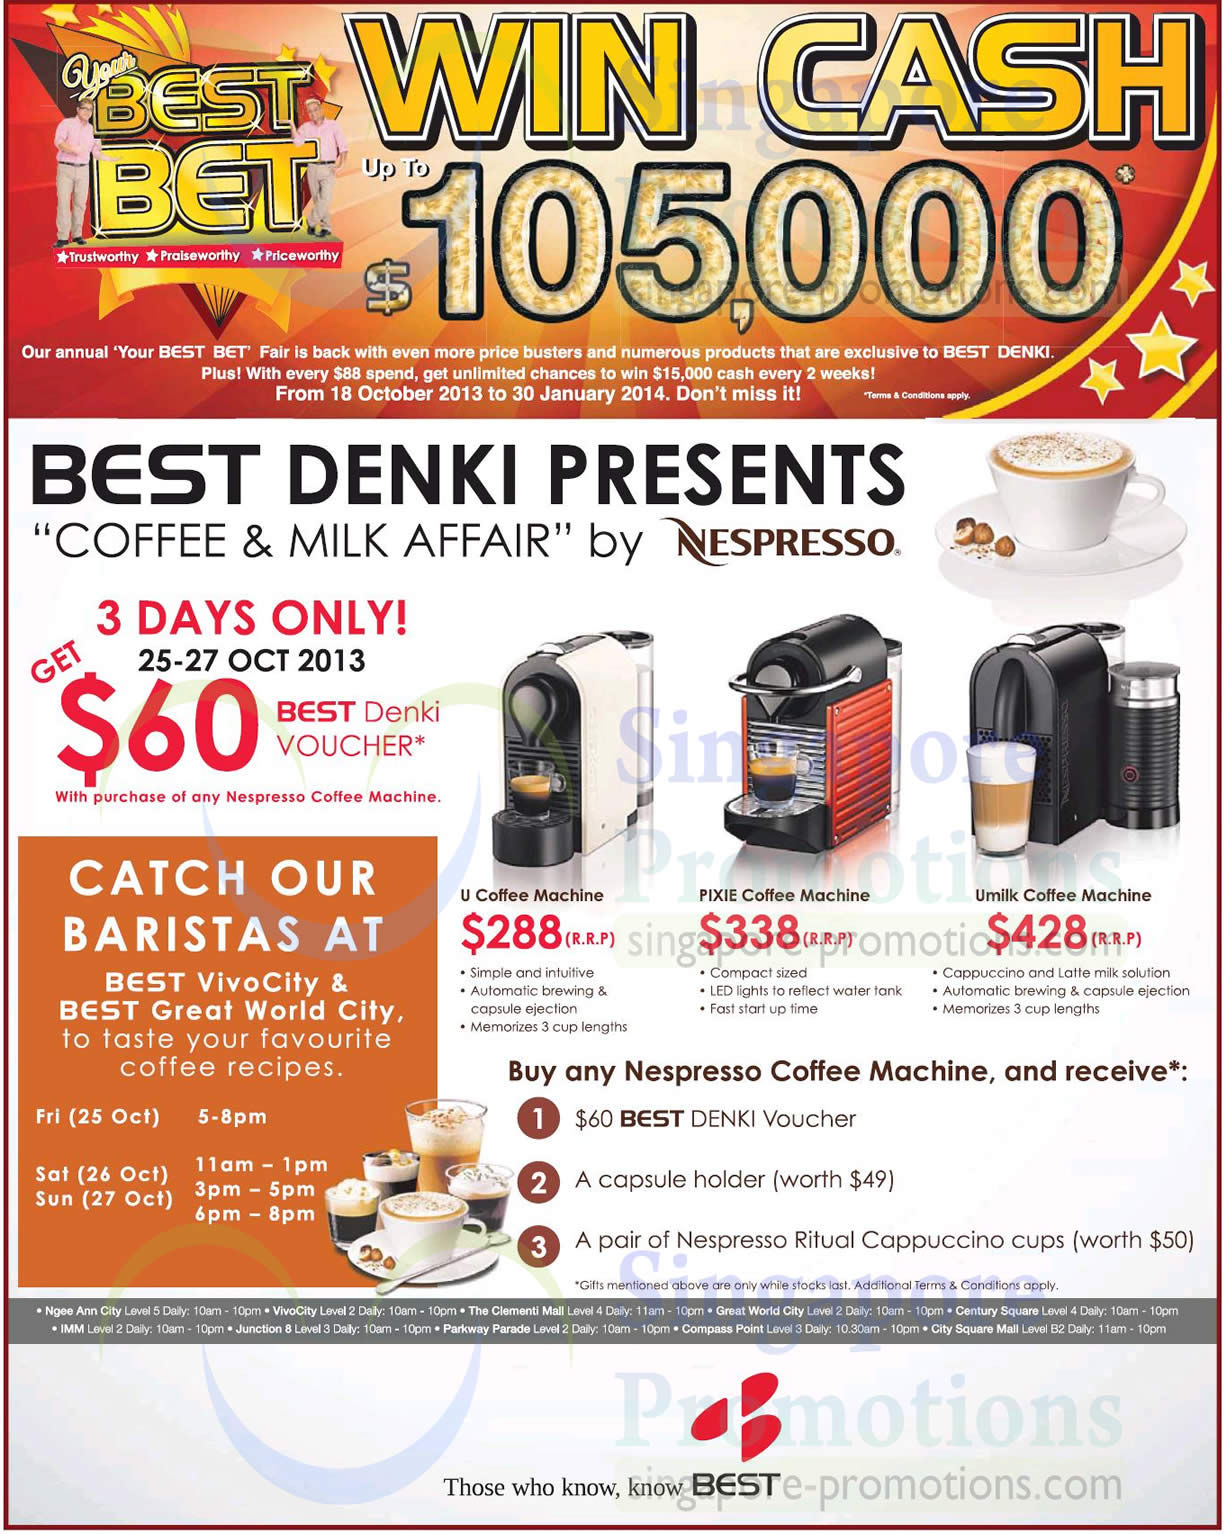 nespresso coffee machines promo best denki tv appliances other electronics offers 25 28. Black Bedroom Furniture Sets. Home Design Ideas